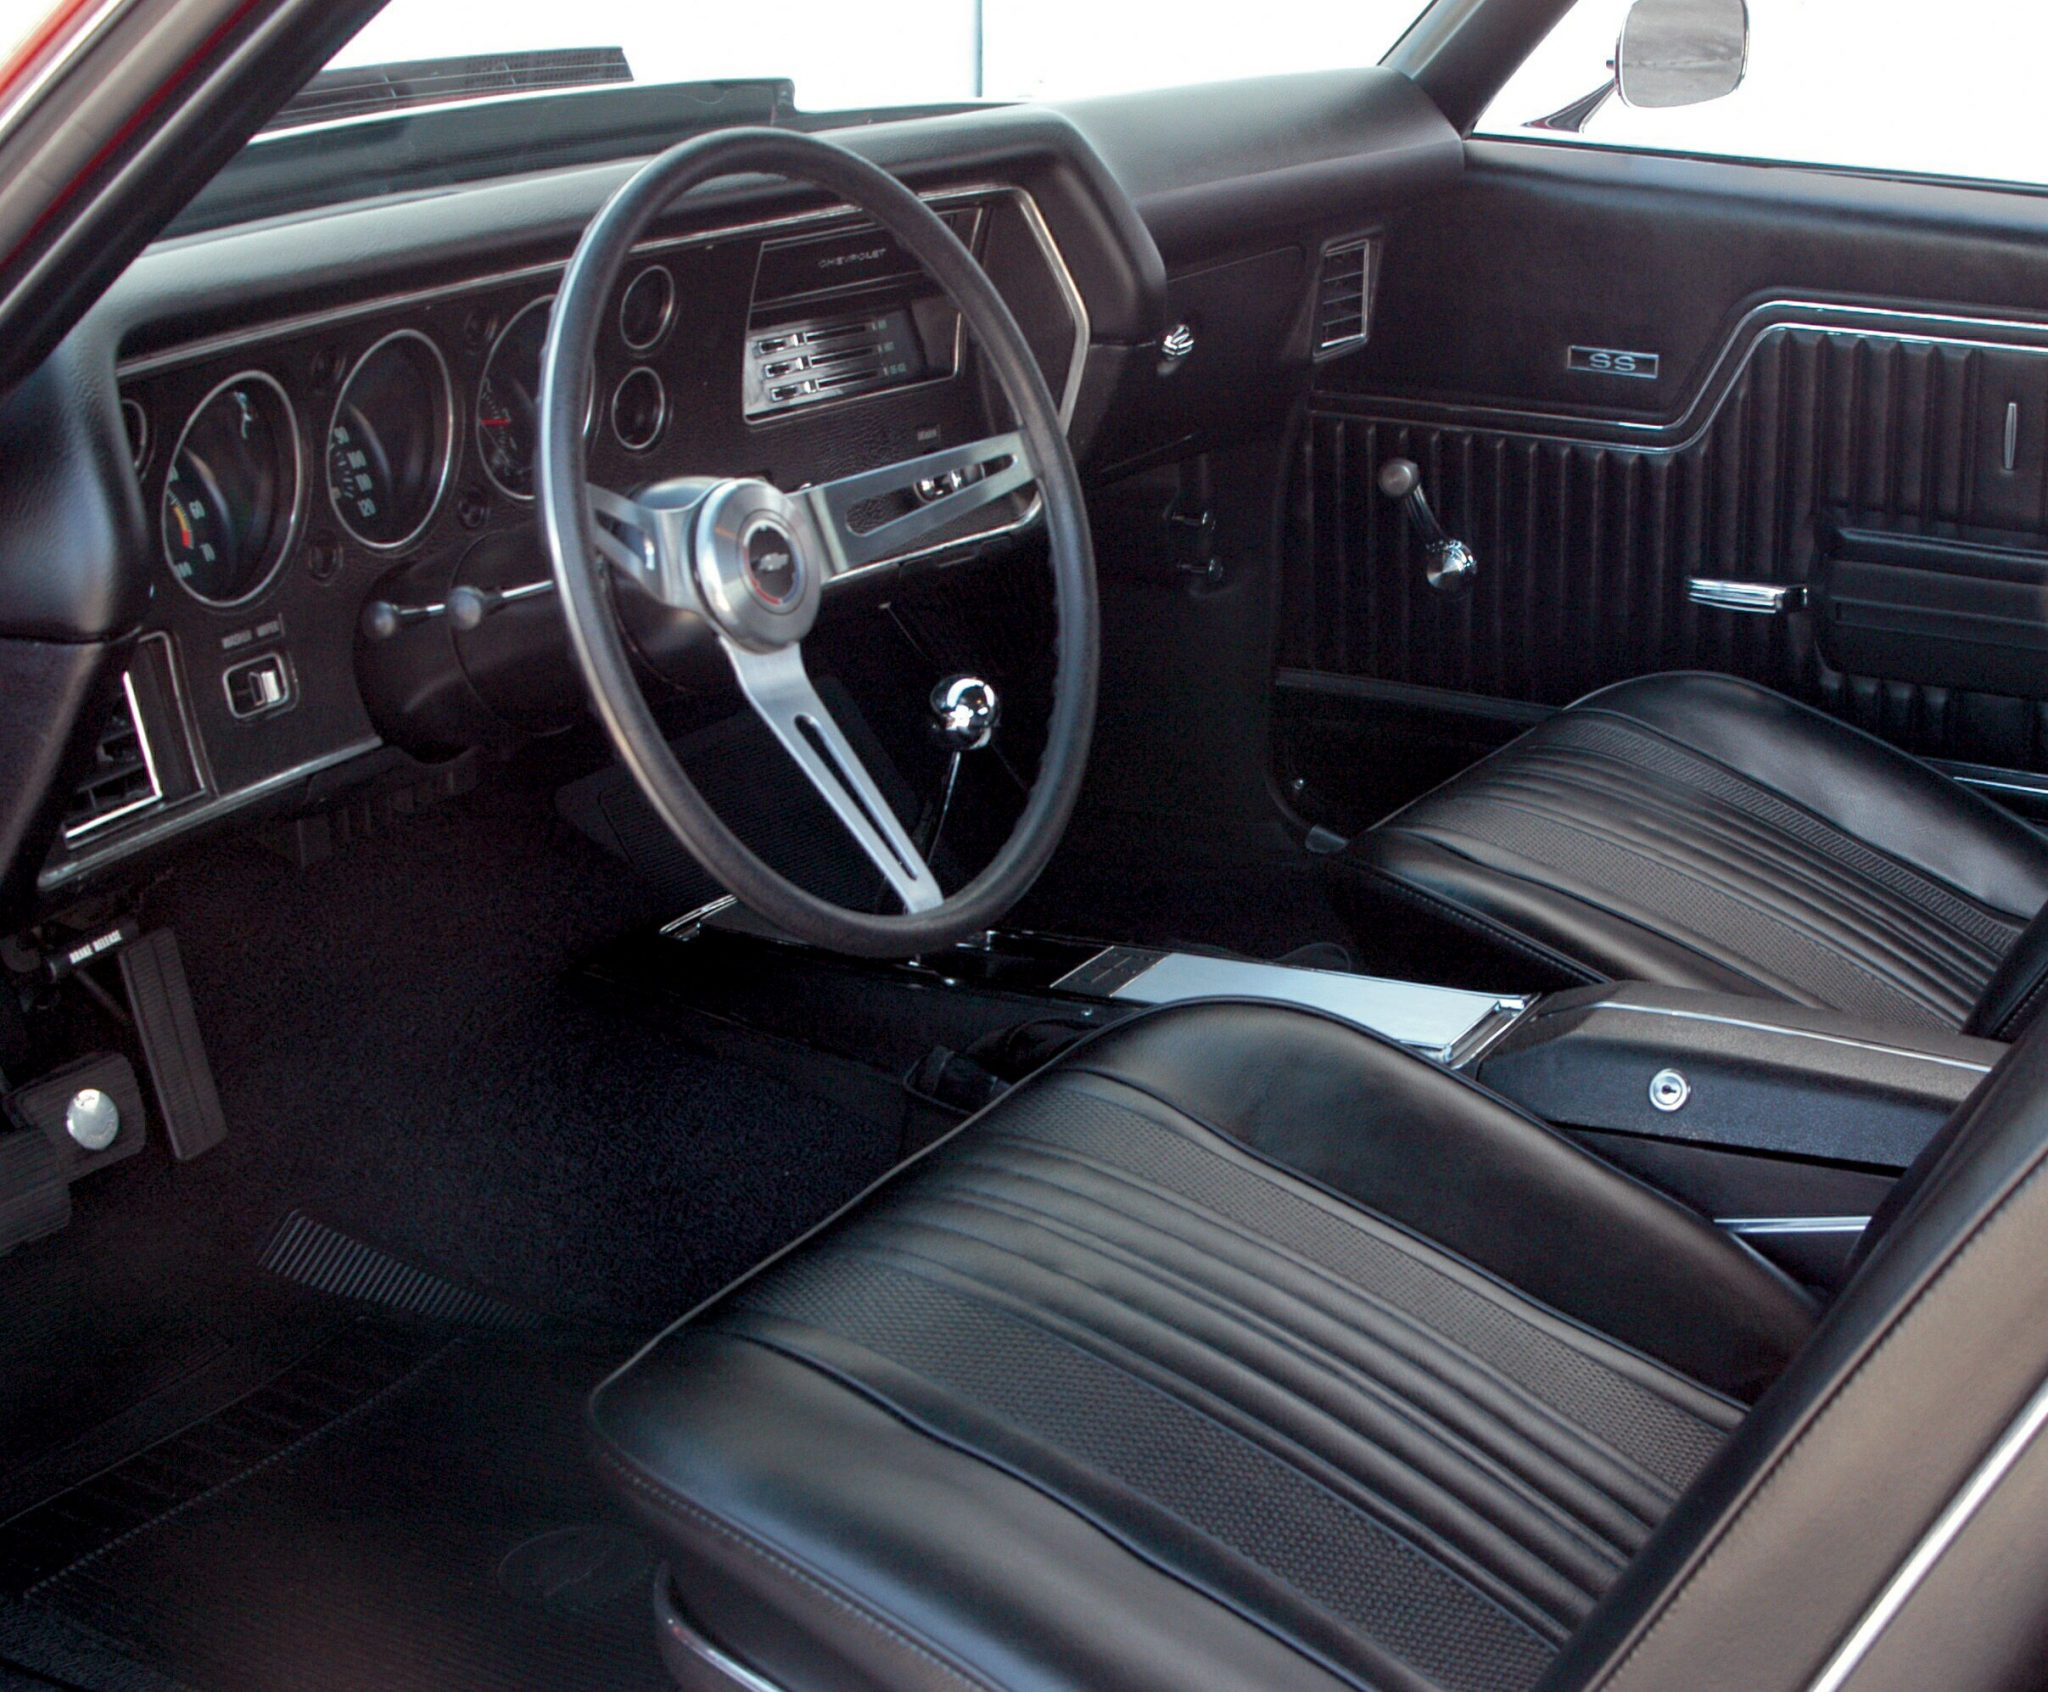 1970 Chevelle LS6 Interior